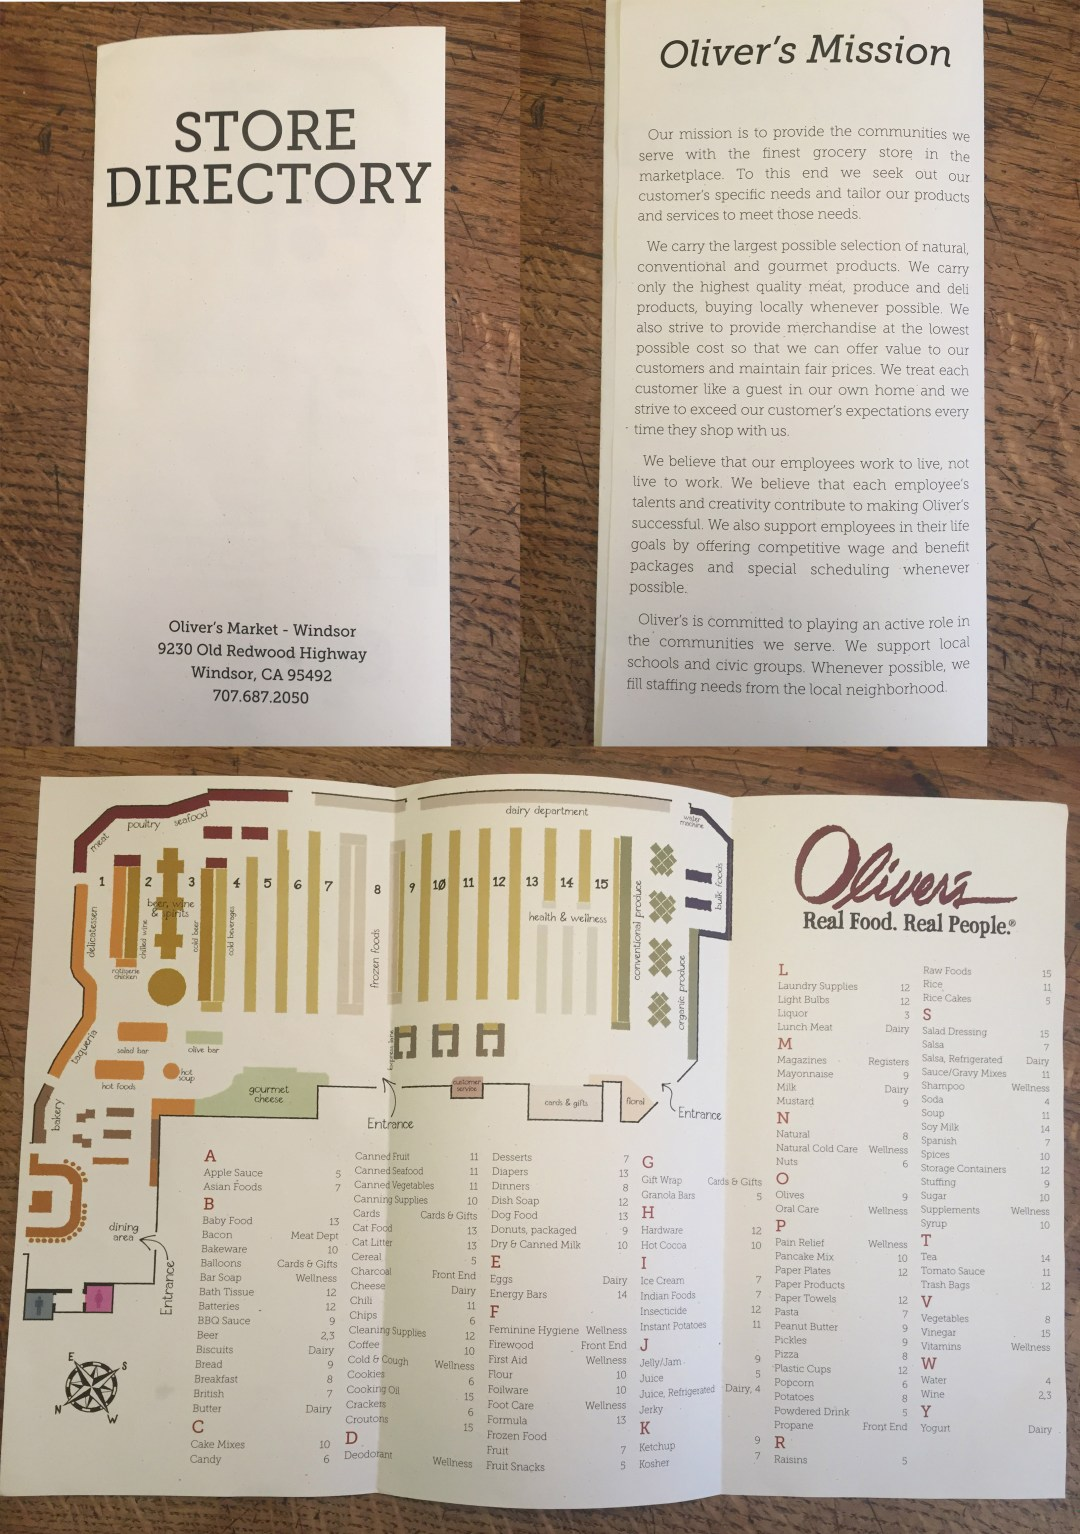 Directory of Oliver's new Windsor Store